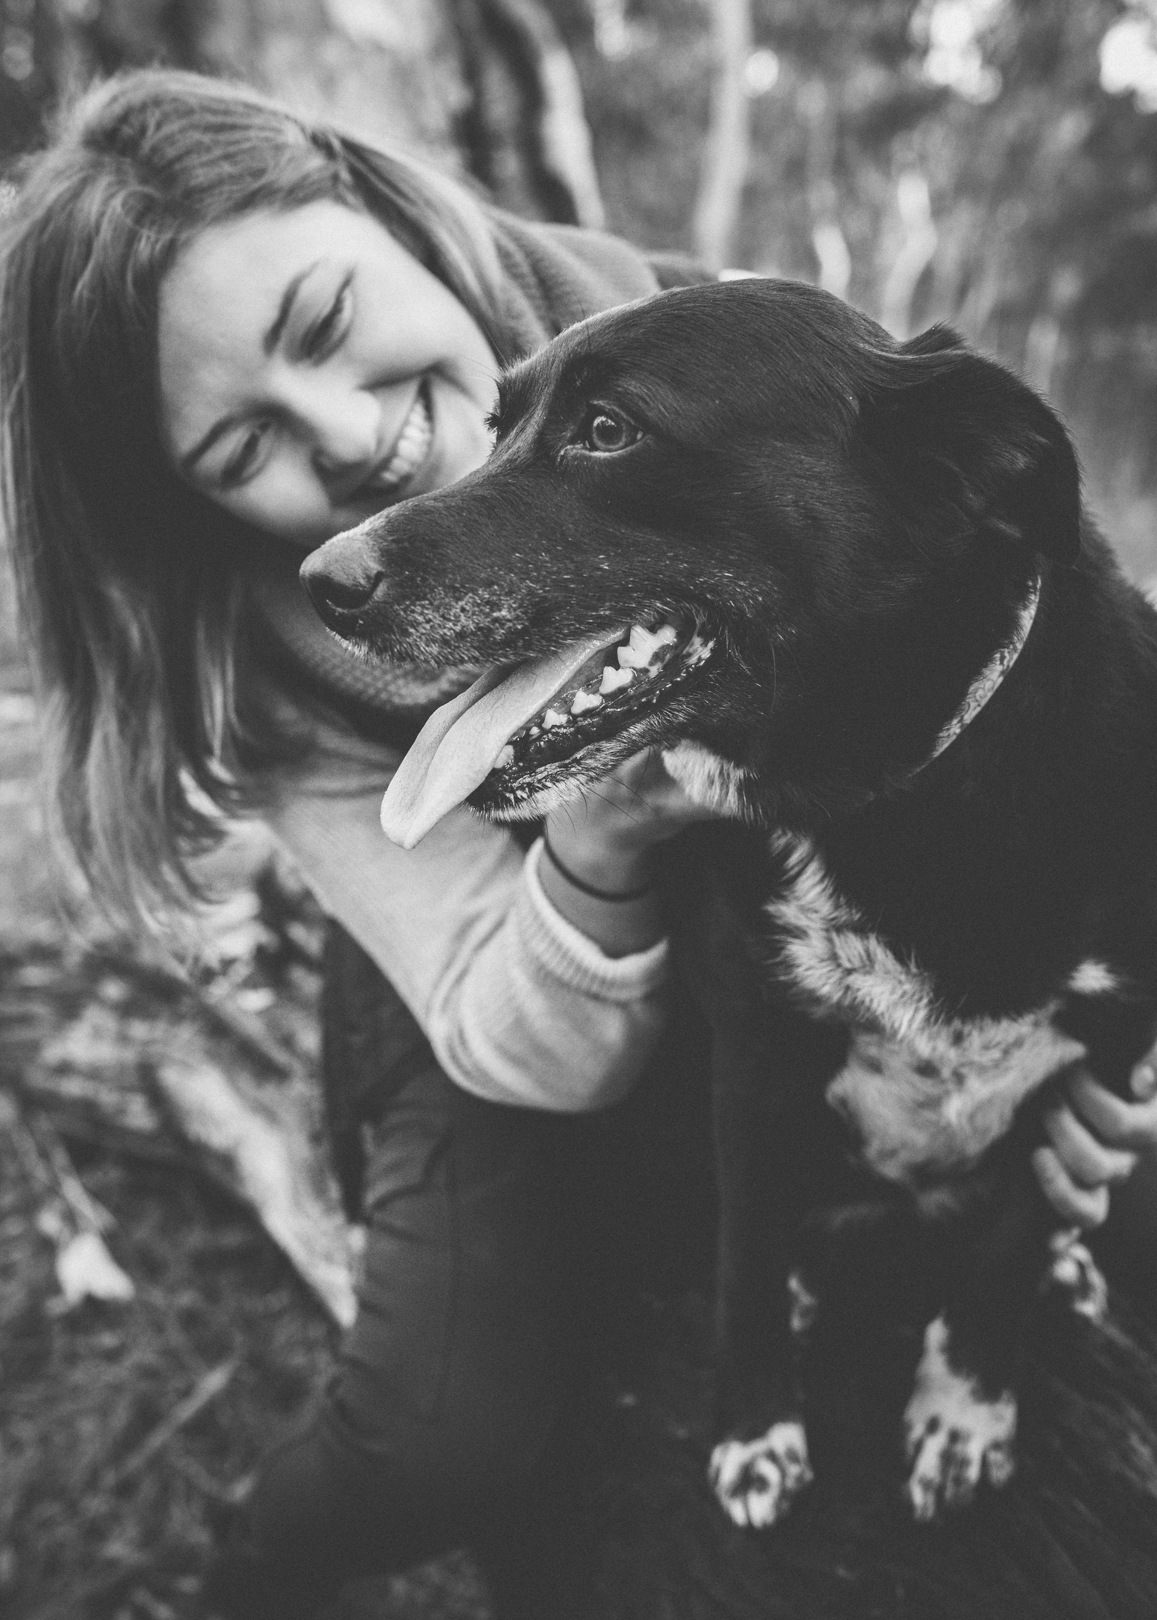 Your Photographer - My name is Kirstie and for the last 6 years I've been lucky enough to spend my days as a pet photographer, capturing beautiful memories for my clients of the relationship they share with their four-legged best friends.In 2017 I spent 2 months hiking SA's Heysen Trail for Beyond Blue. Last year I backpacked through the mountains of Central Asia.. so you can probably say, I'm a traveller. I'm also a dog-mum (to this girl pictured →), horse rider, volunteer for Windamere Horse Haven, a food-lover, business mentor, and a podcast host, but I love my job as a pet photographer so much that I spend most of my time doing that!I specialise in working with animals and am all about creating the perfect artwork for your home- weather that's a collection of canvases to hang above your lounge suit and enjoy each day, or a keepsake album to flip through on a cold winters day to make you all warm and fuzzy!